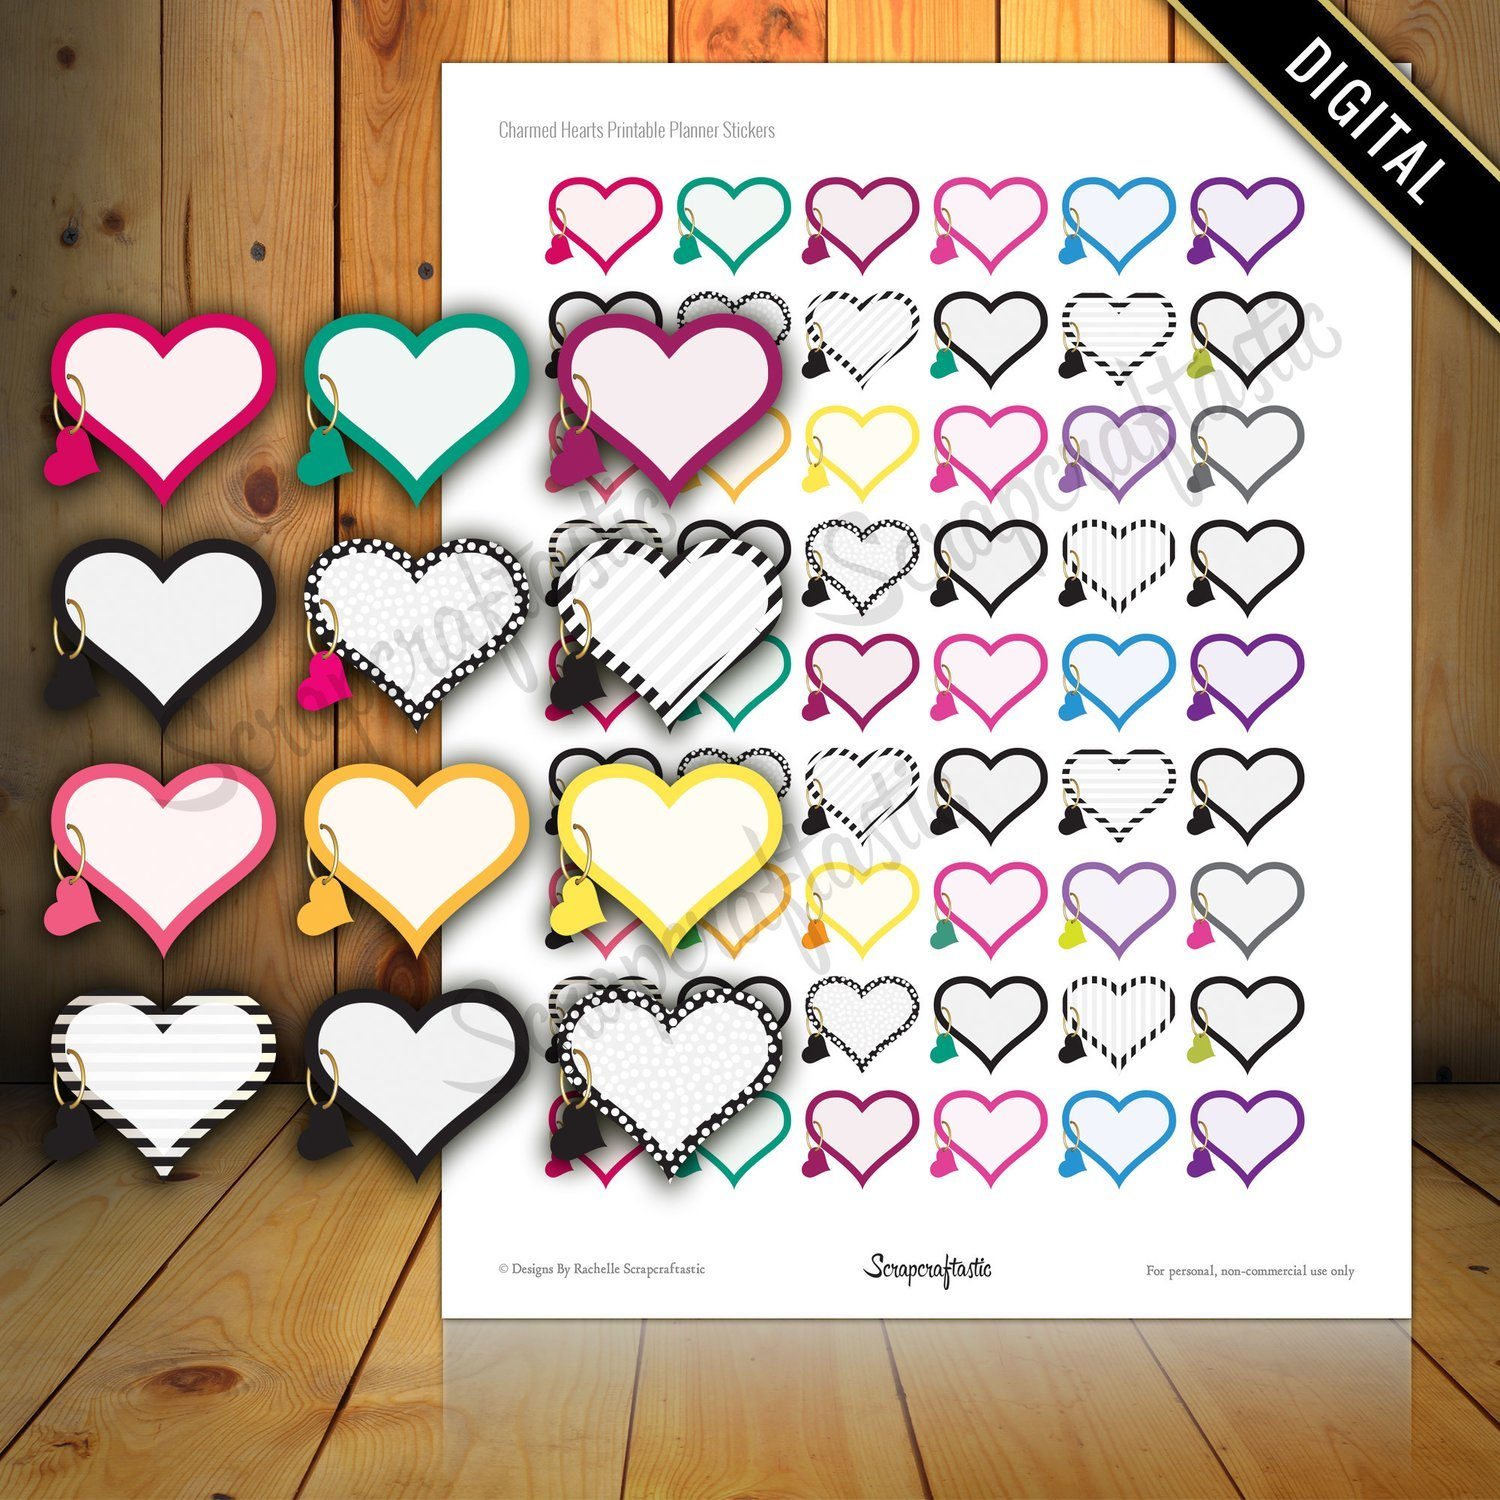 photo relating to Digital Planners and Organizers named Charmed Hearts Printable Planner Stickers for Paper Planners, Agendas and Organizers